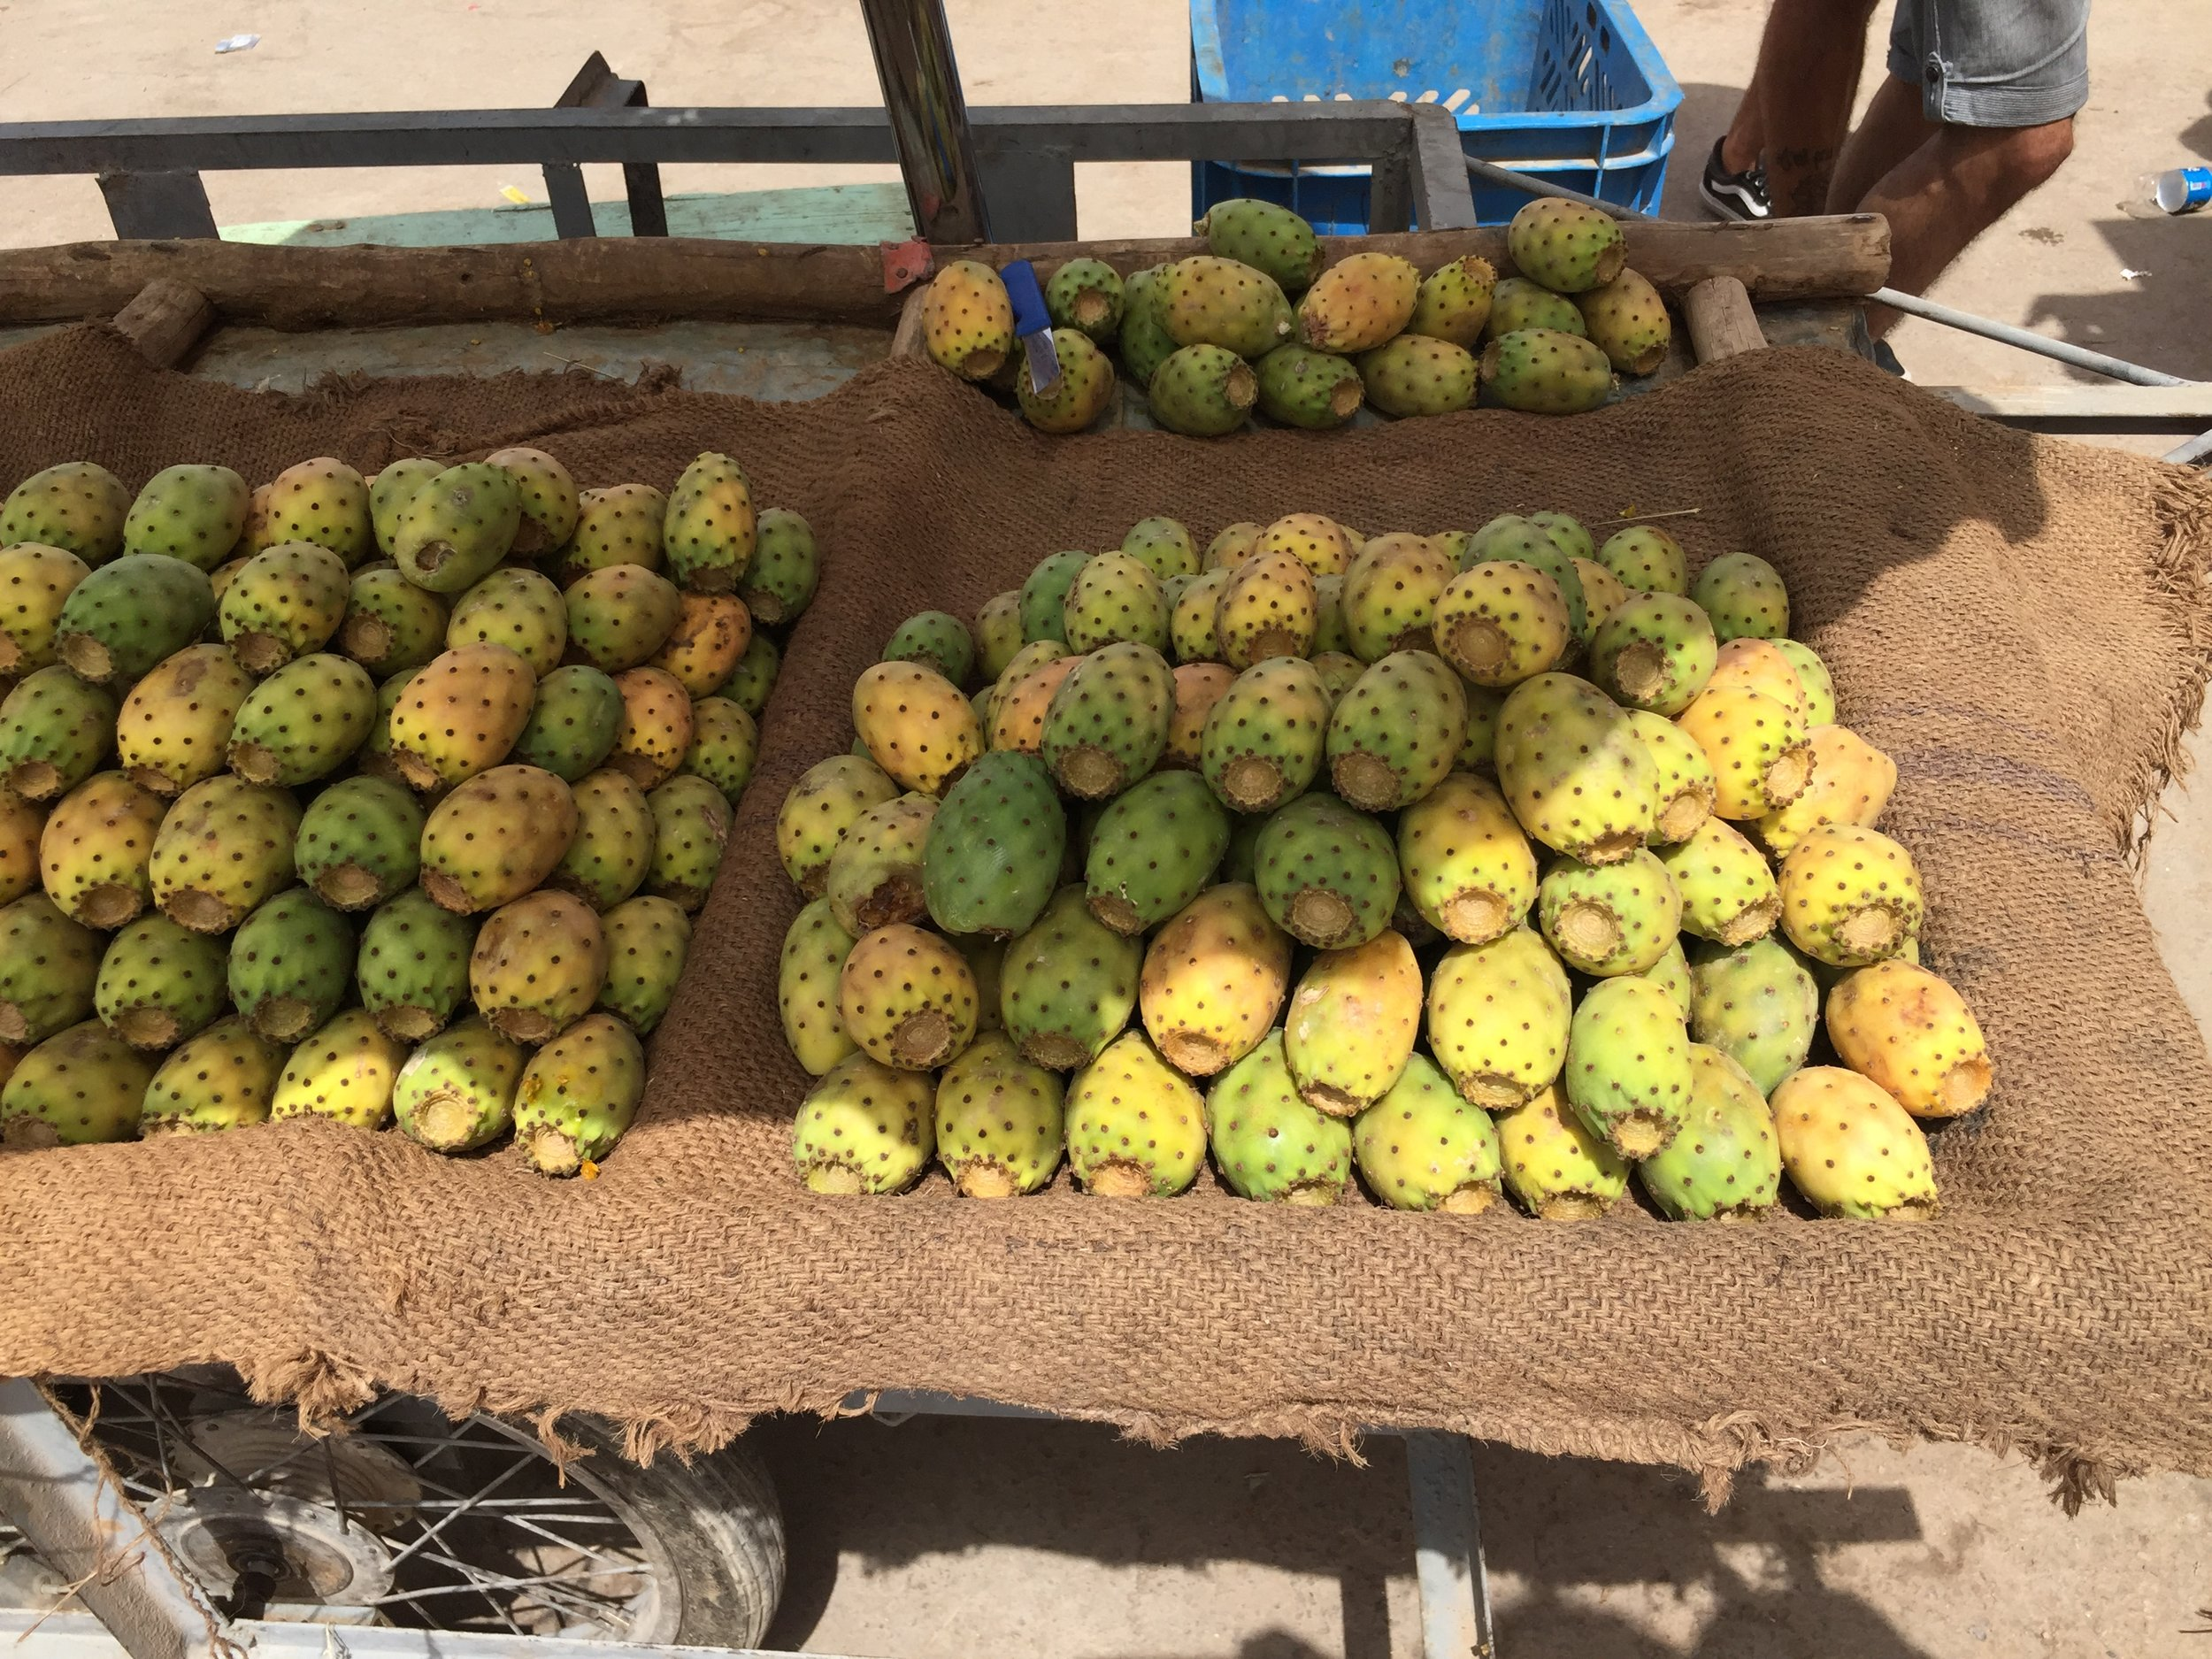 Prickly pear cactus fruit, sweet fruit but prickly local attitude.